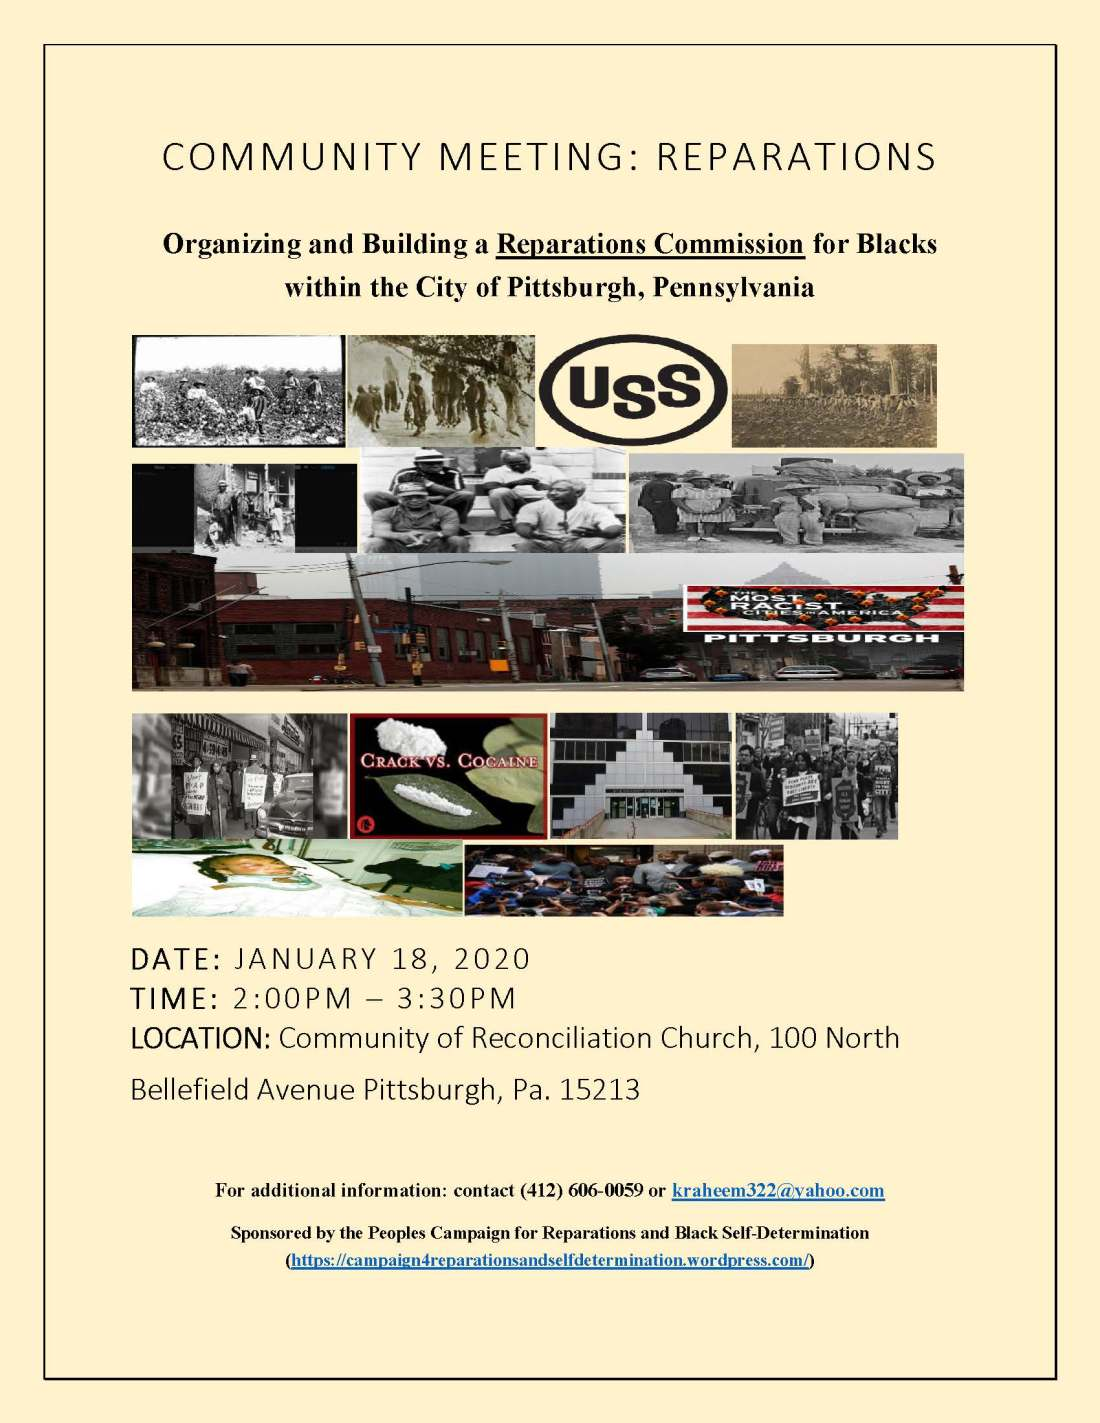 Reparations Commuity Meeting flyer, 01-18-2020